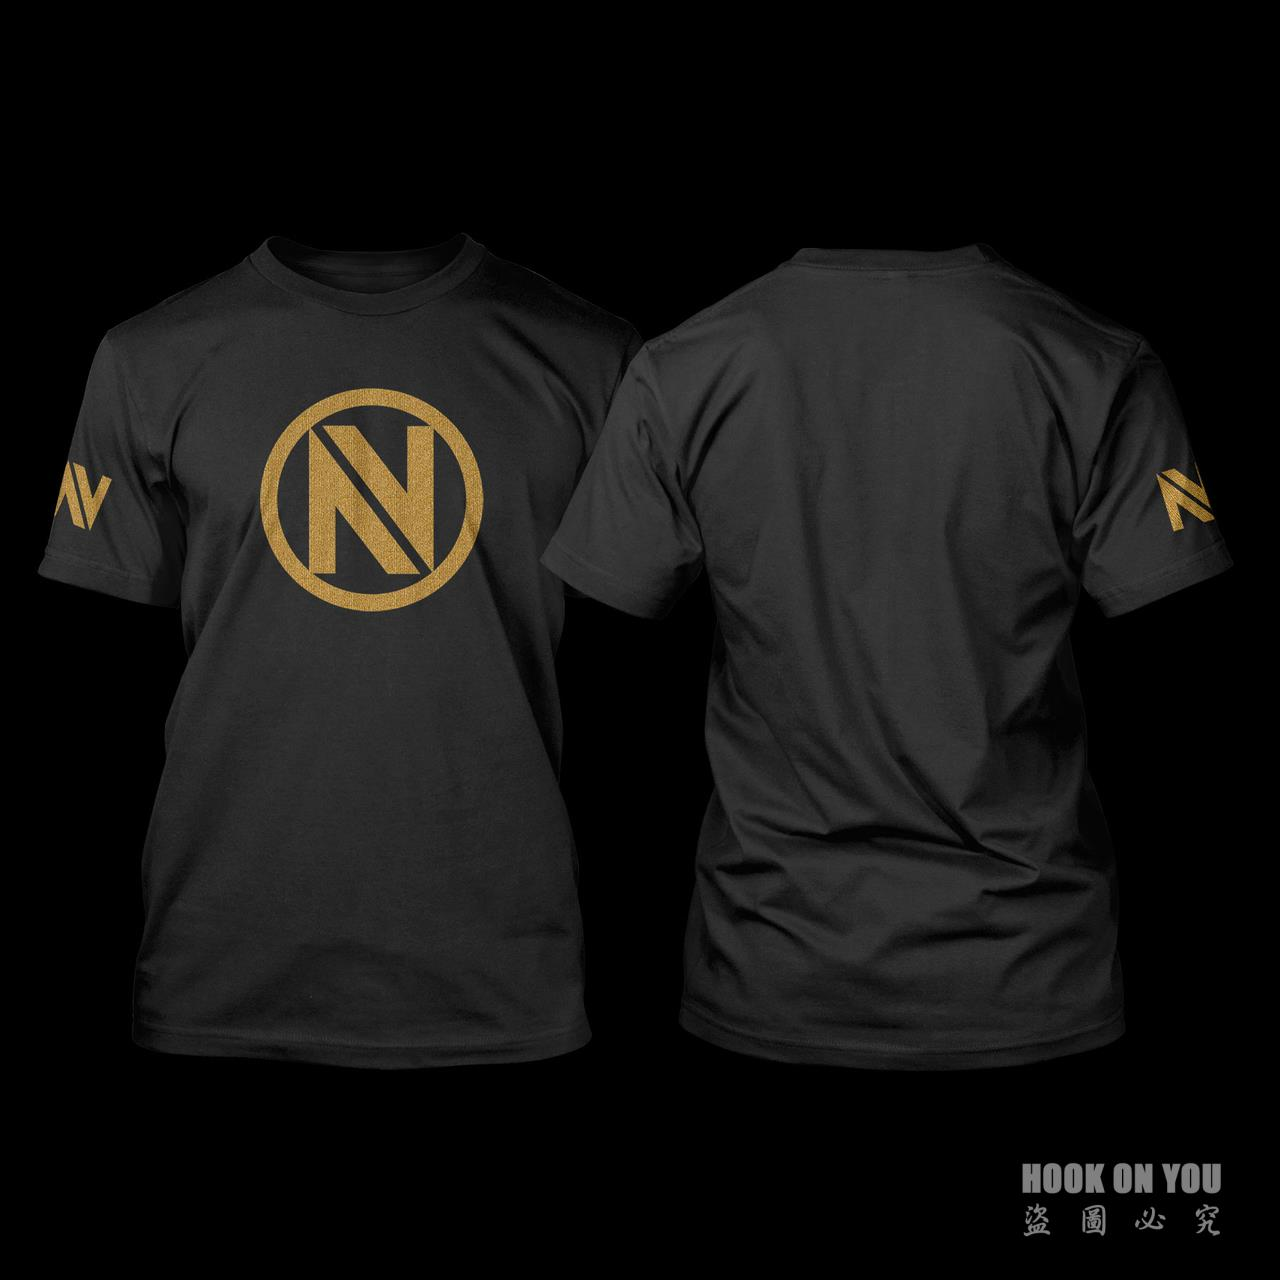 exclusive design cs go csgo game team envyus short sleeve